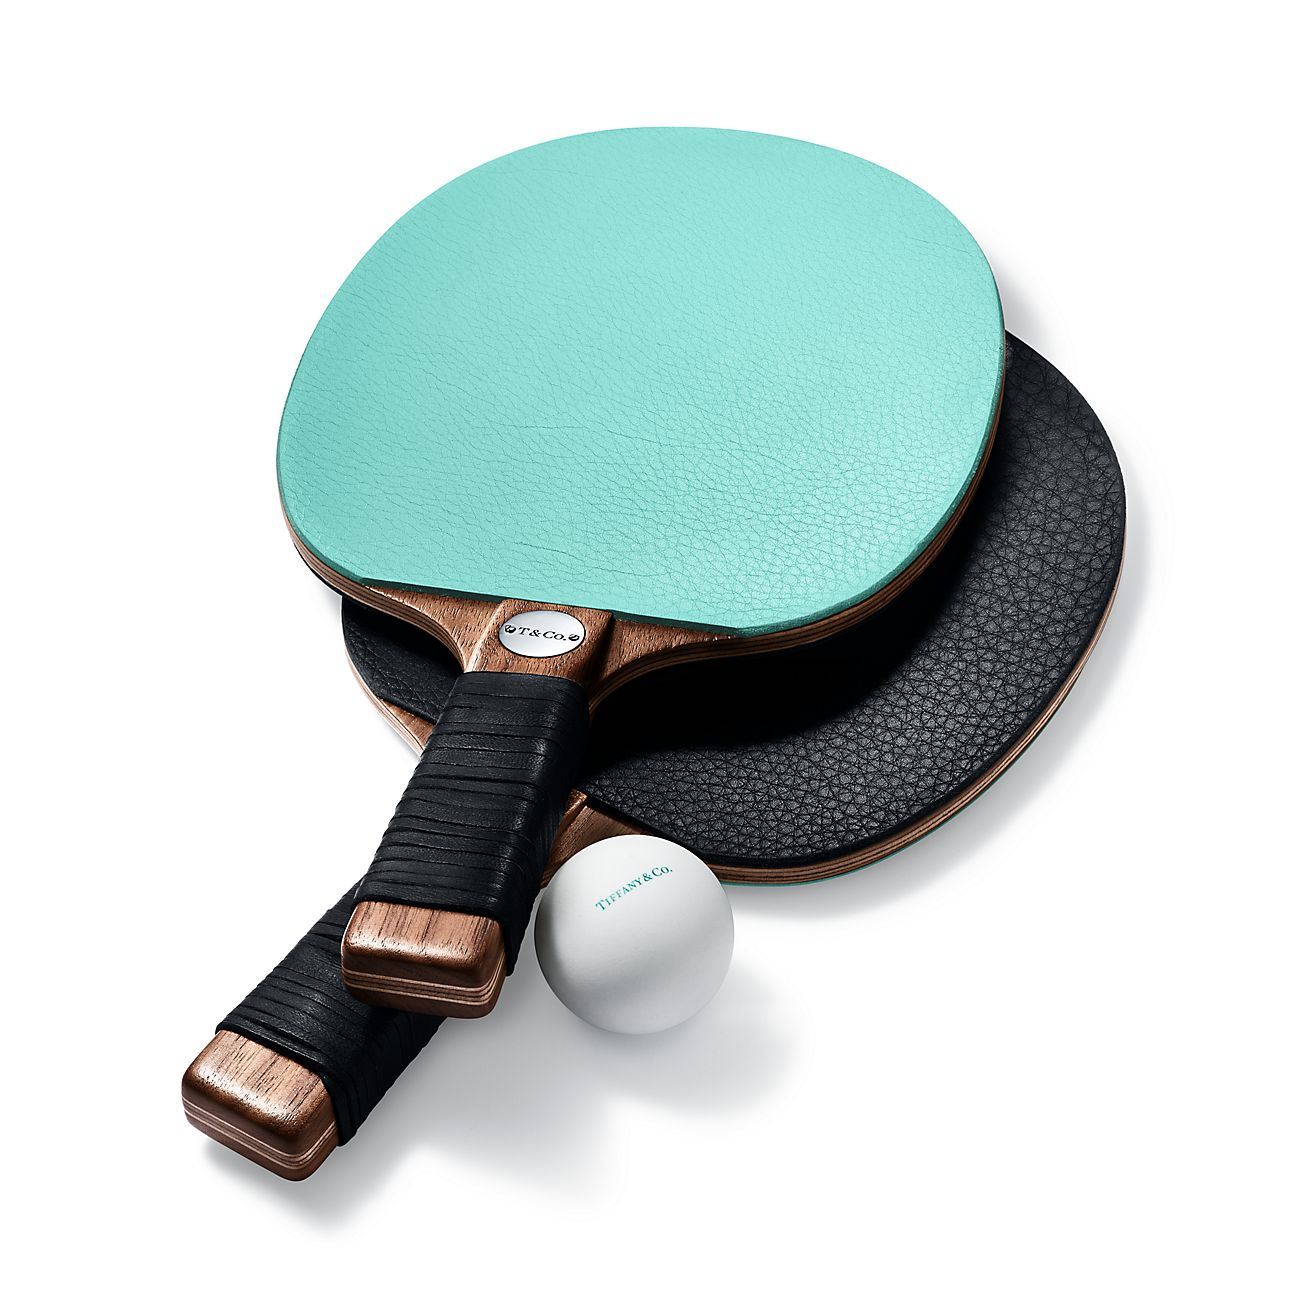 Shop Leather Reclaimed Walnut Table Tennis Paddles Tiffany Co